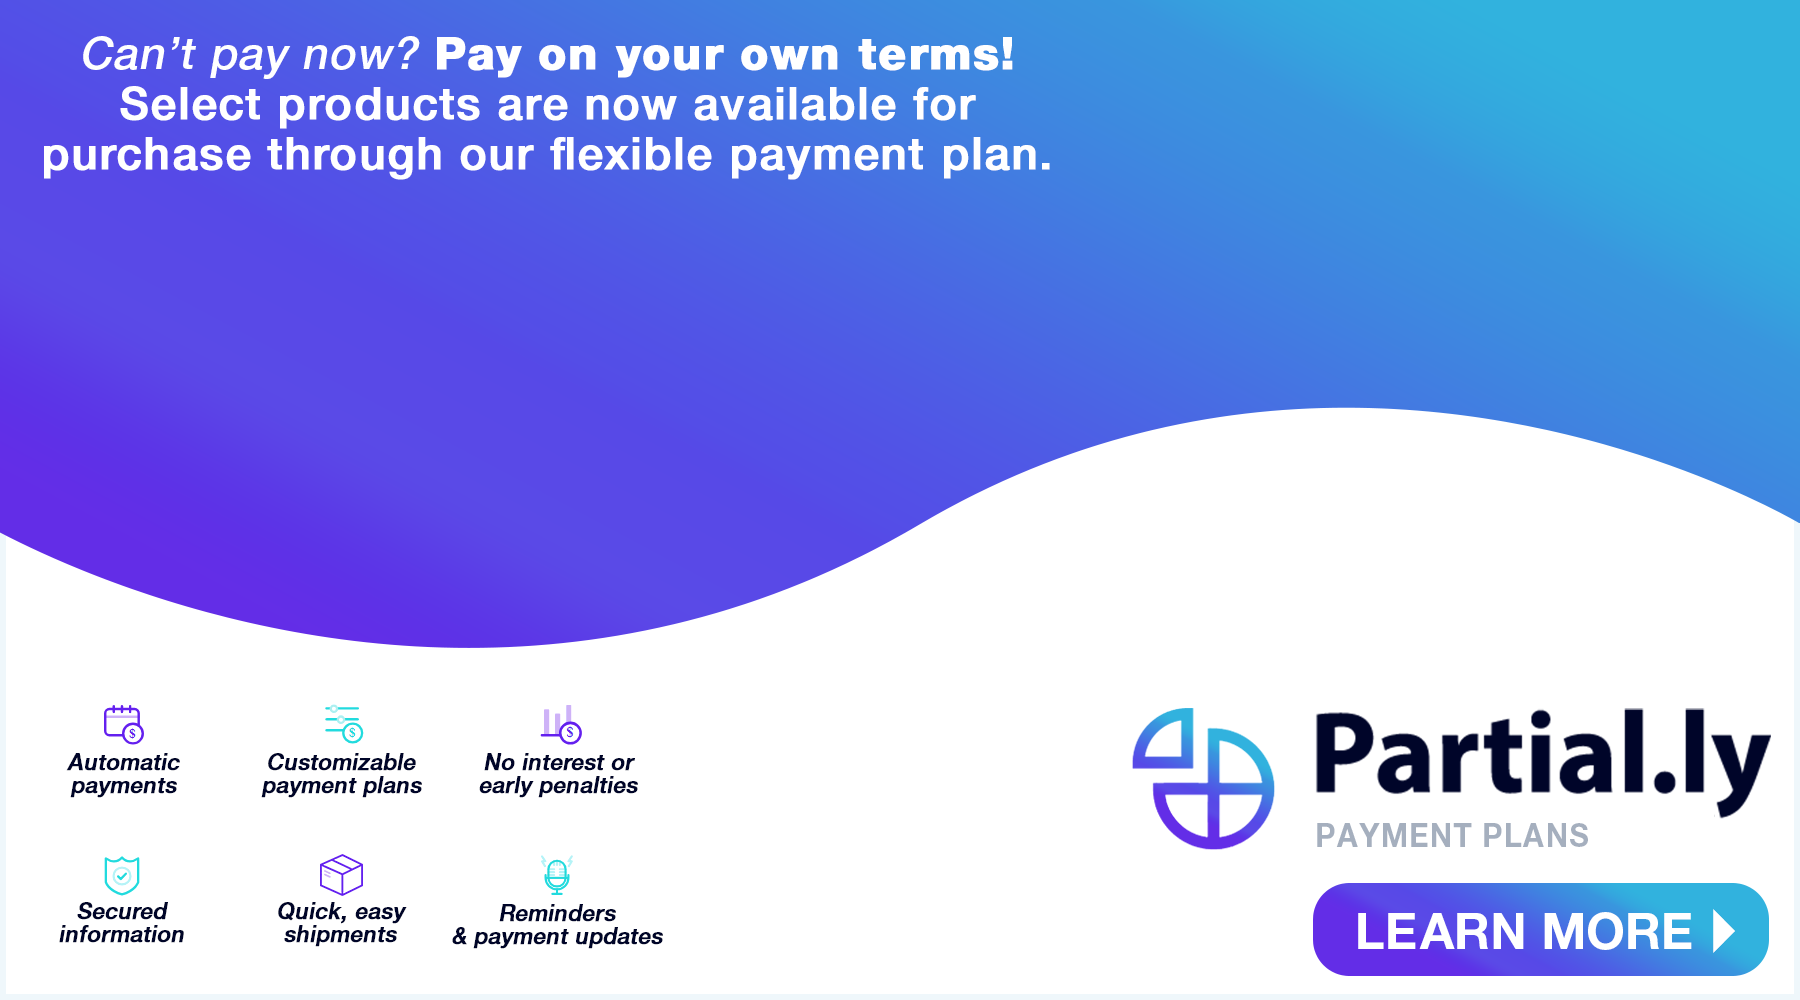 Flexible payment methods with Partial.ly